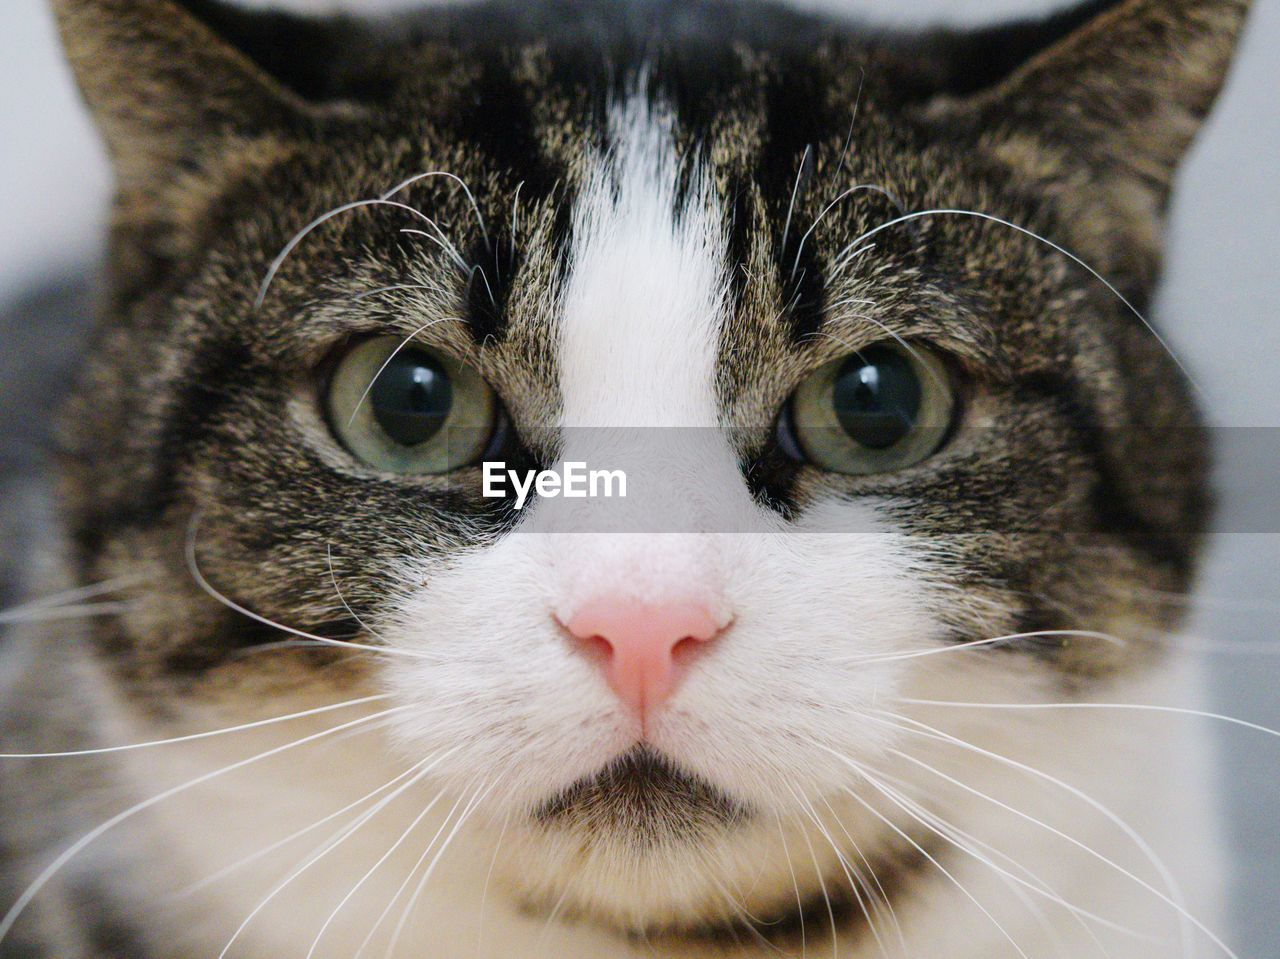 mammal, animal themes, cat, domestic, animal, pets, one animal, domestic animals, domestic cat, feline, vertebrate, close-up, whisker, portrait, animal body part, looking at camera, no people, indoors, animal head, focus on foreground, animal eye, snout, animal mouth